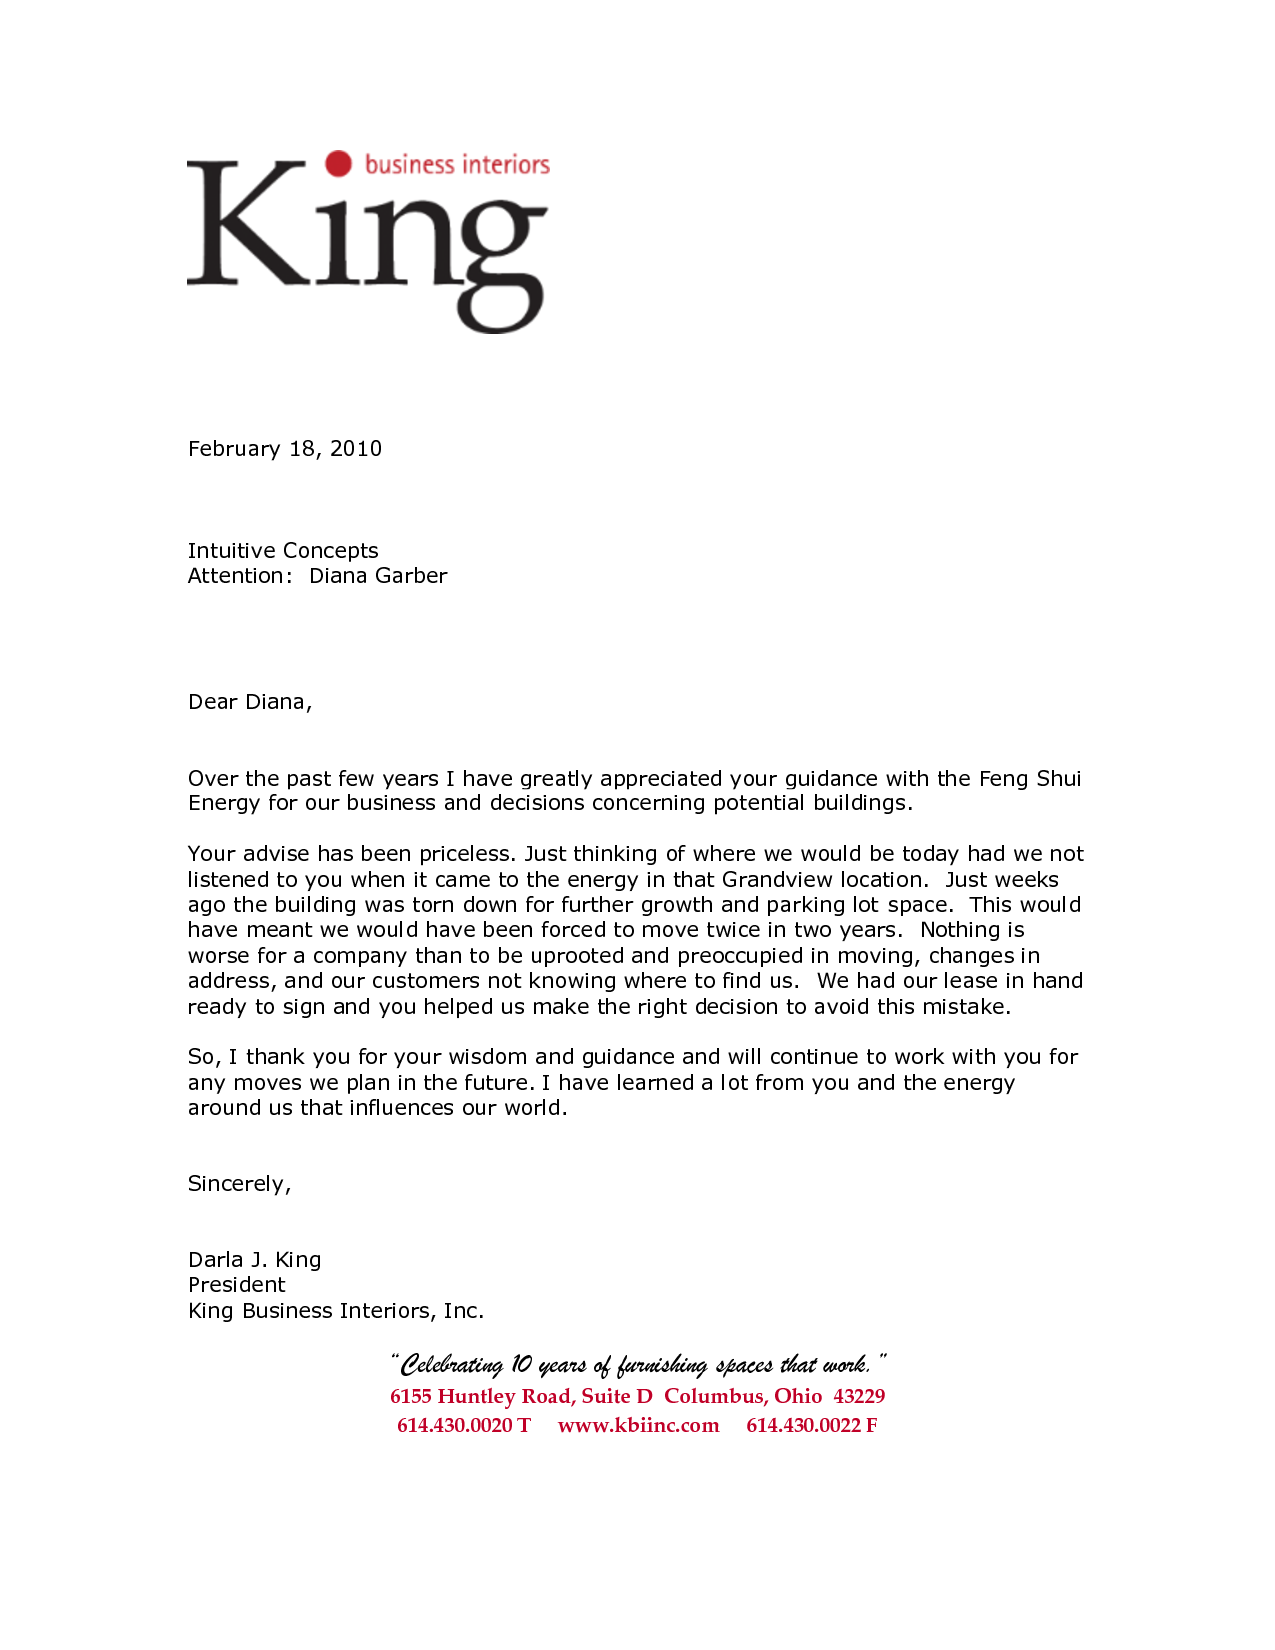 Business letter of reference template king business interiors business letter of reference template king business interiors reference letter wajeb Choice Image